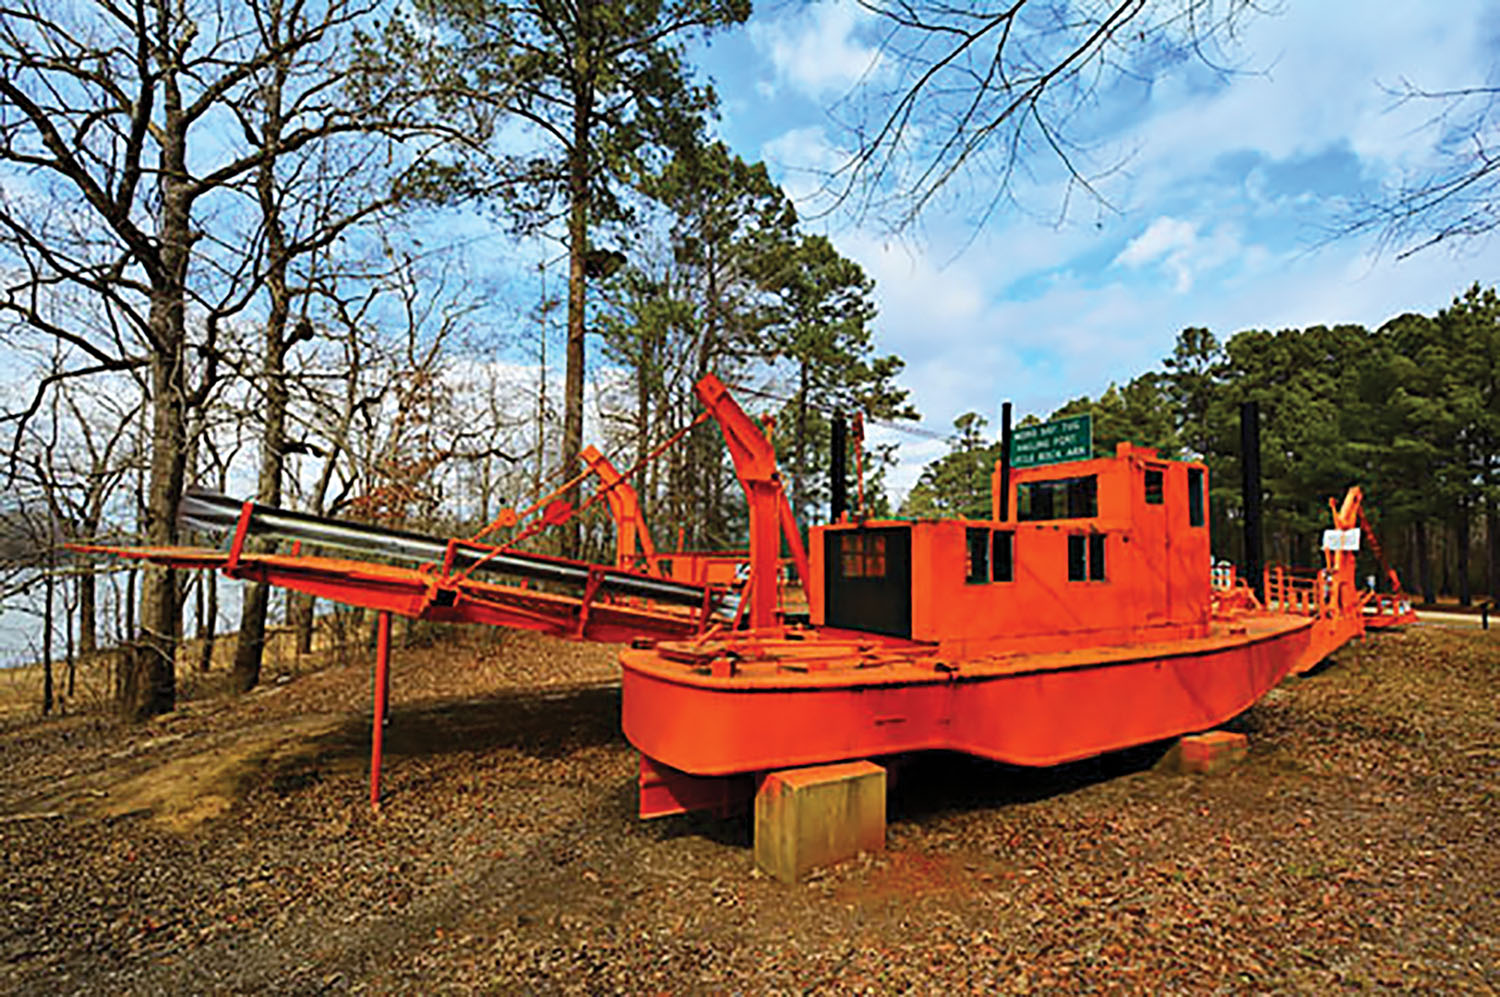 The Moro Bay Ferry towboat, on display in Moro Bay State Park, Ark.